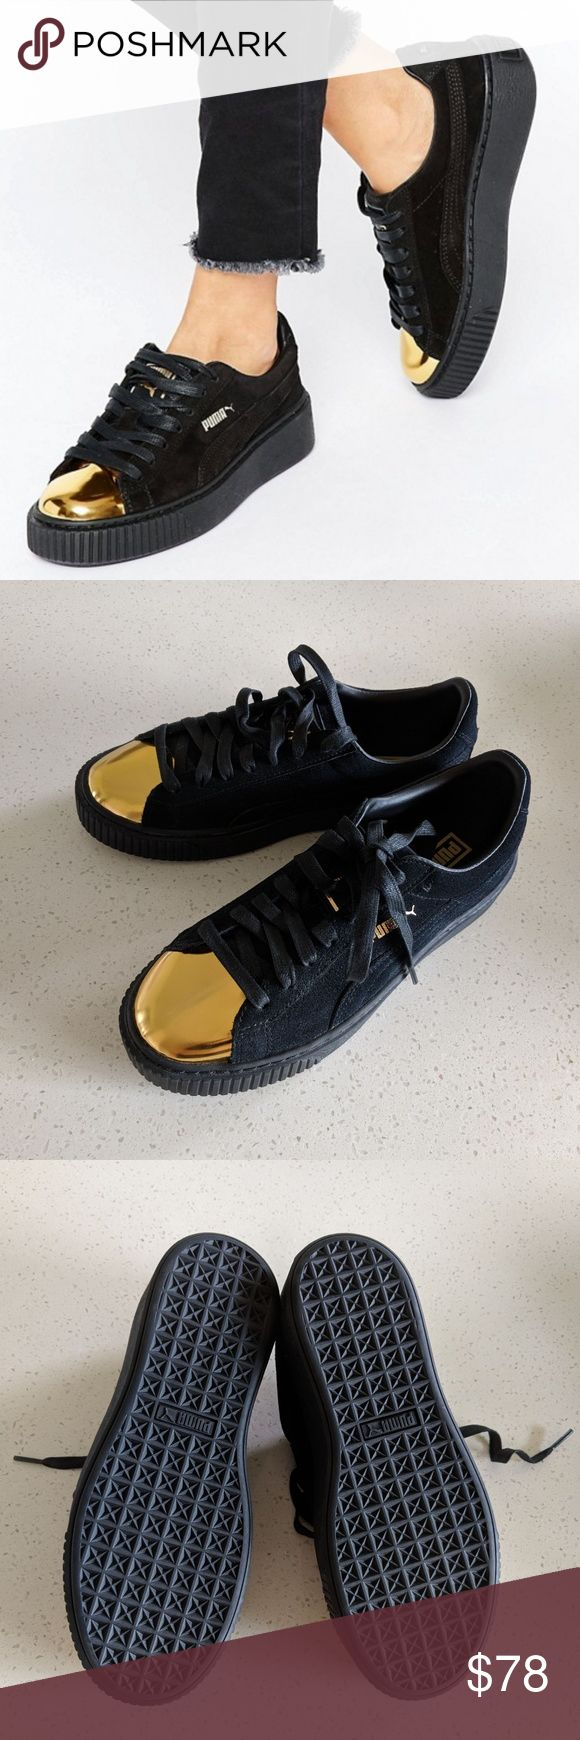 Puma Creepers Black Suede Gold Cap Toe 8 NWOB New without box Puma black suede gold toe Creeper shoes, size 8. I believe these are from the Rihanna Fenty collection. One shoe has a faint hazy spot in the metallic (see last pic)-- not at all noticeable when worn. Puma Shoes Sneakers